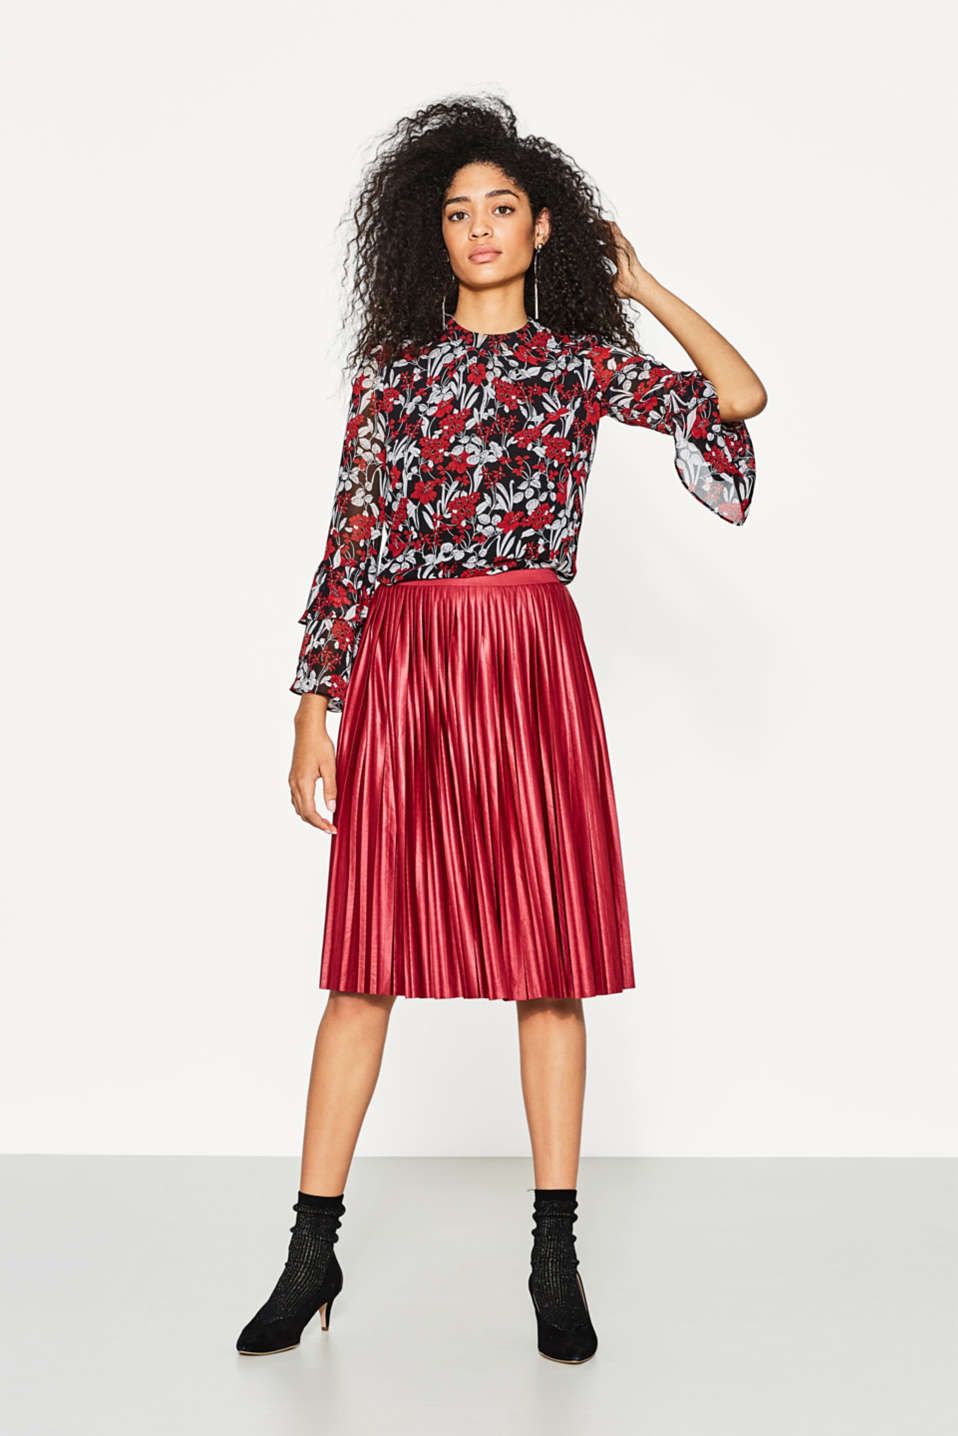 Flowing blouse with a floral print